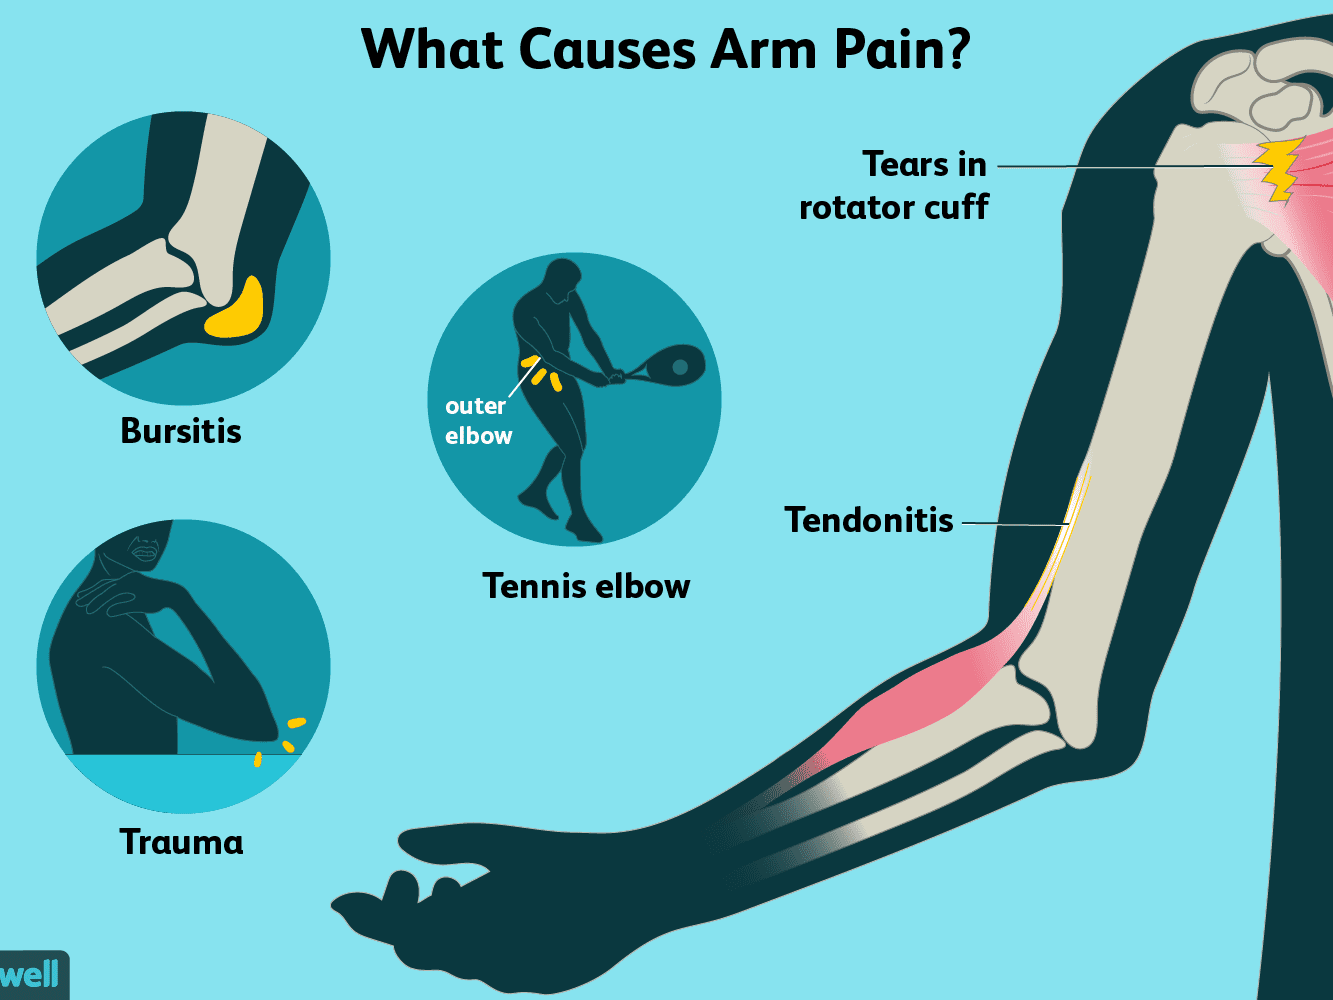 Arm Pain: Causes, Treatment, and When to See a Doctor